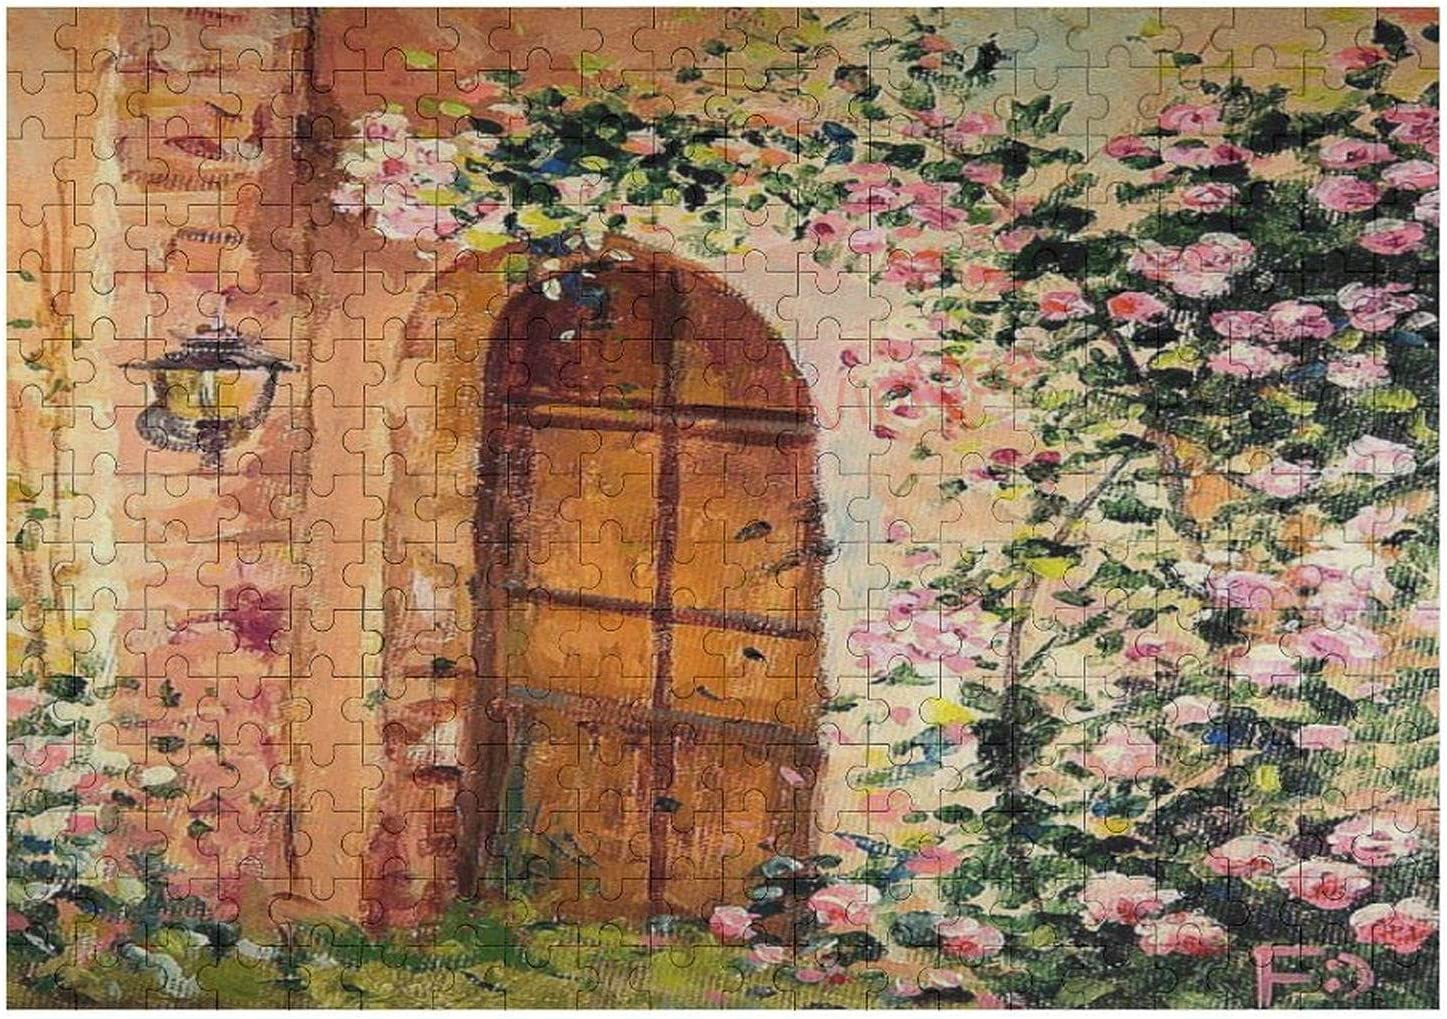 500 Pieces Jigsaw Puzzle Secret Garden. Roses. Painting with Flowers Jigsaw Puzzle for Child, Adults Home Decor Fun Game Toys Birthday Gift